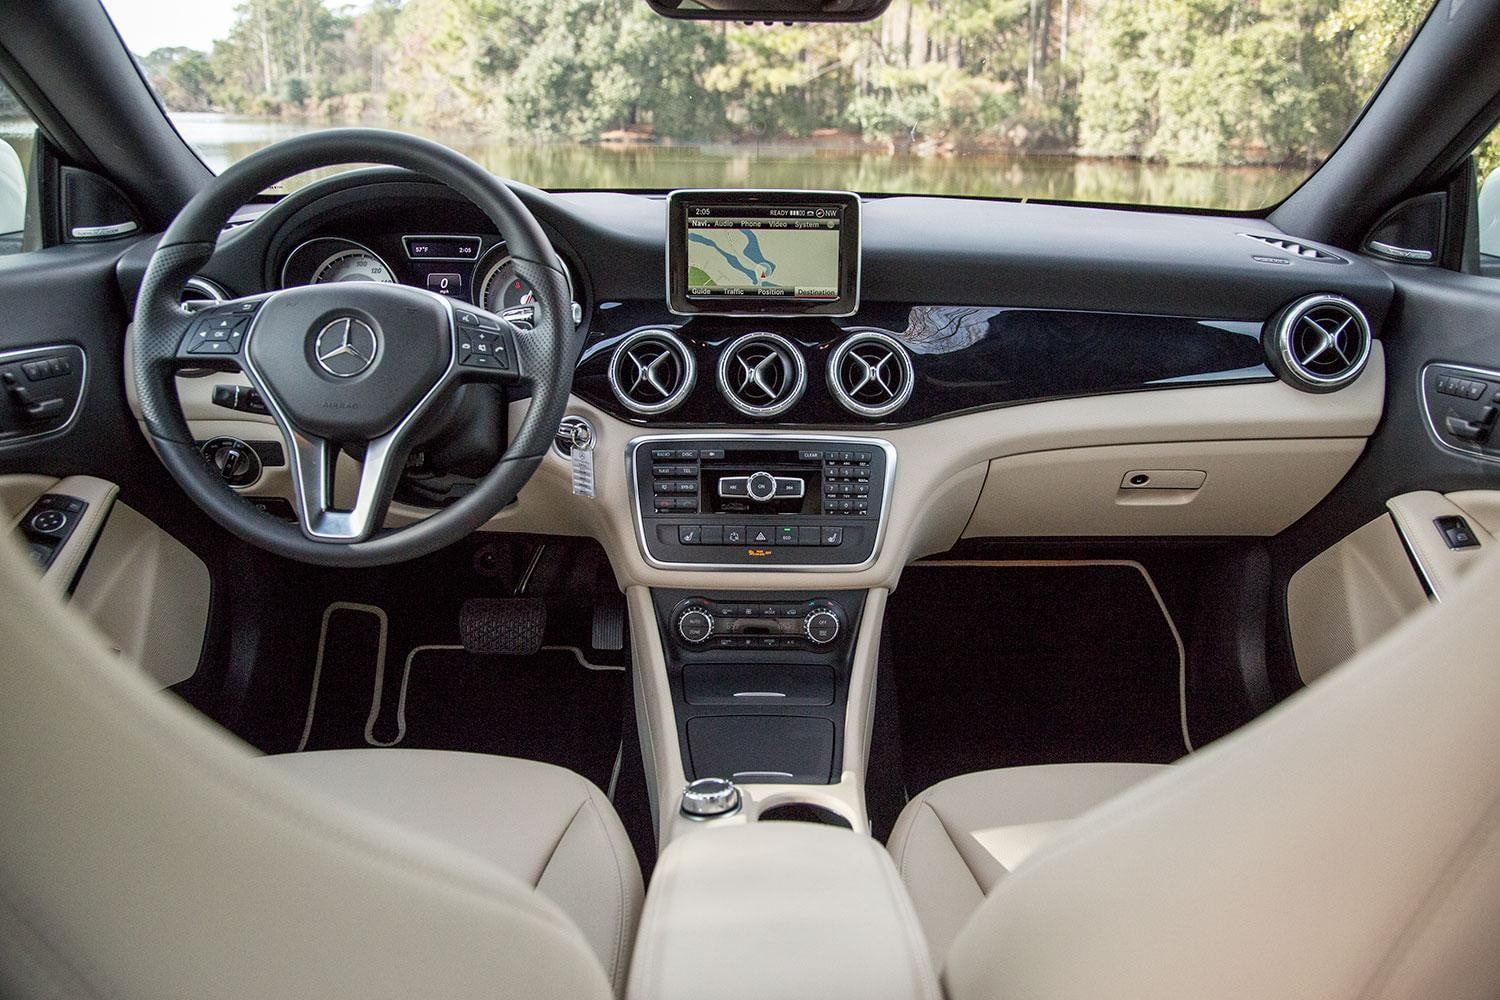 2015 Mercedes Benz Cla250 Review Digital Trends Cla 2014 Front Interior From Back